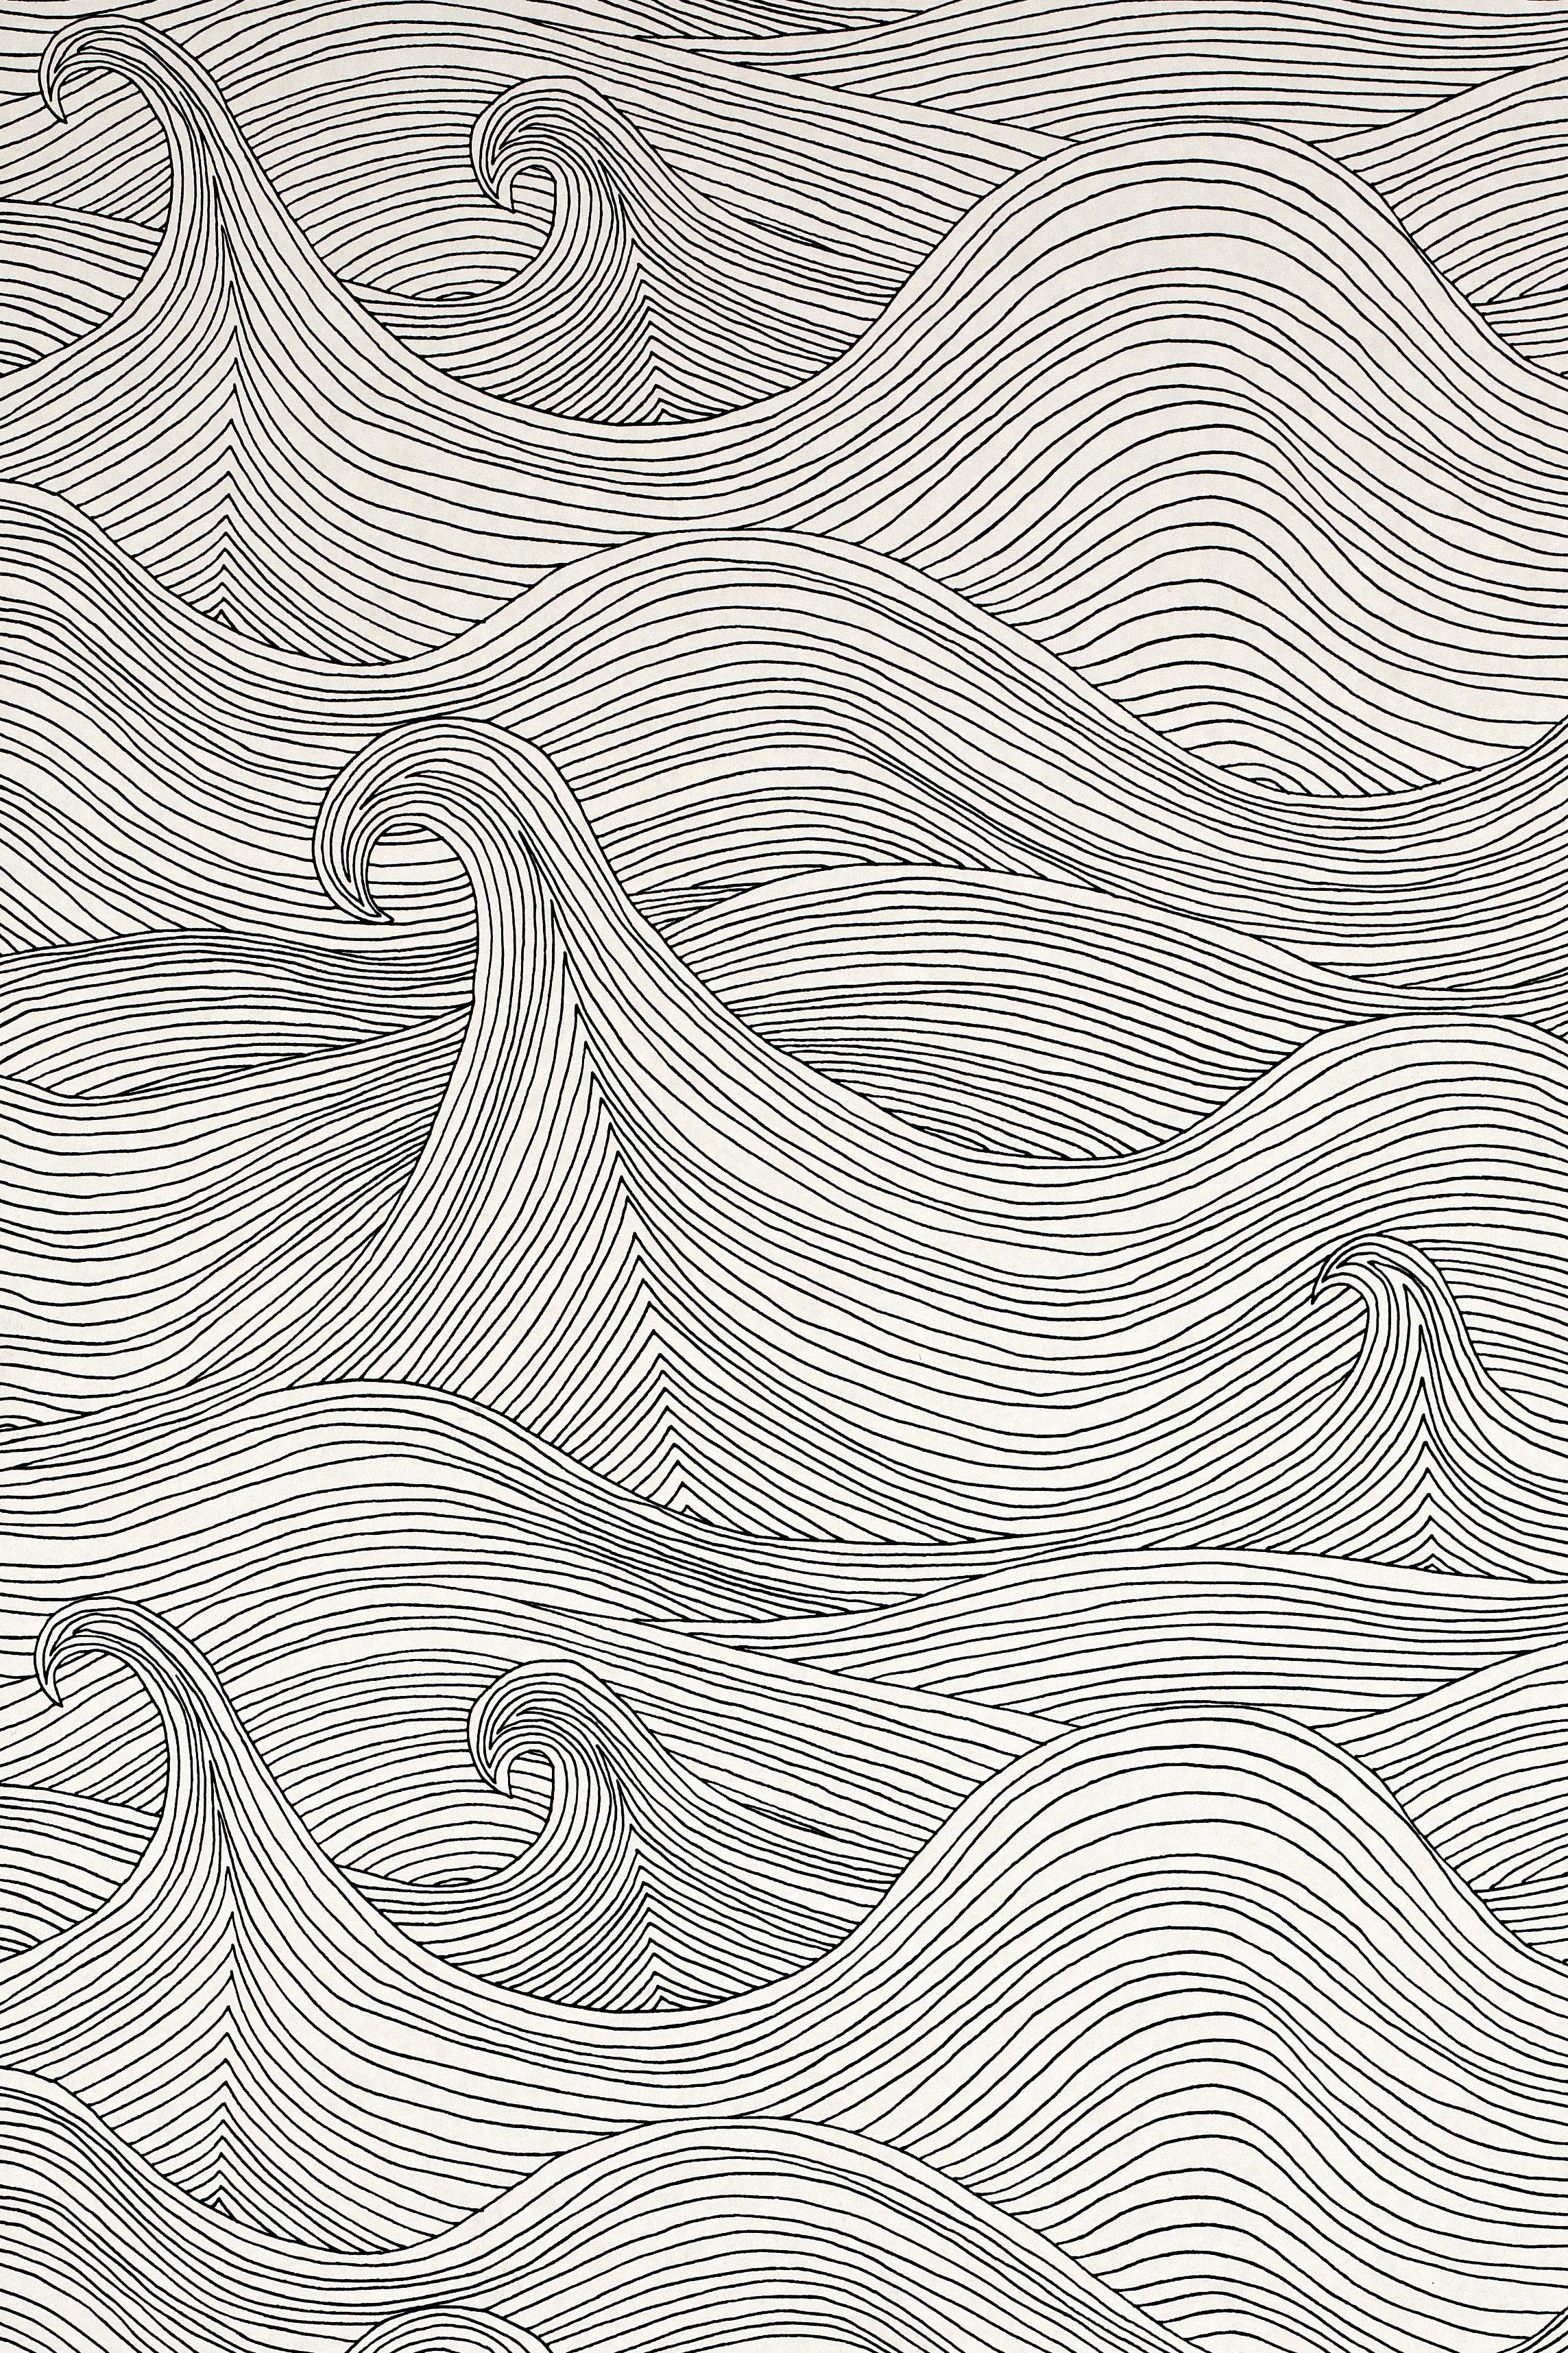 Seascape Wallpaper Winter Abigail Edwards Hand Drawn